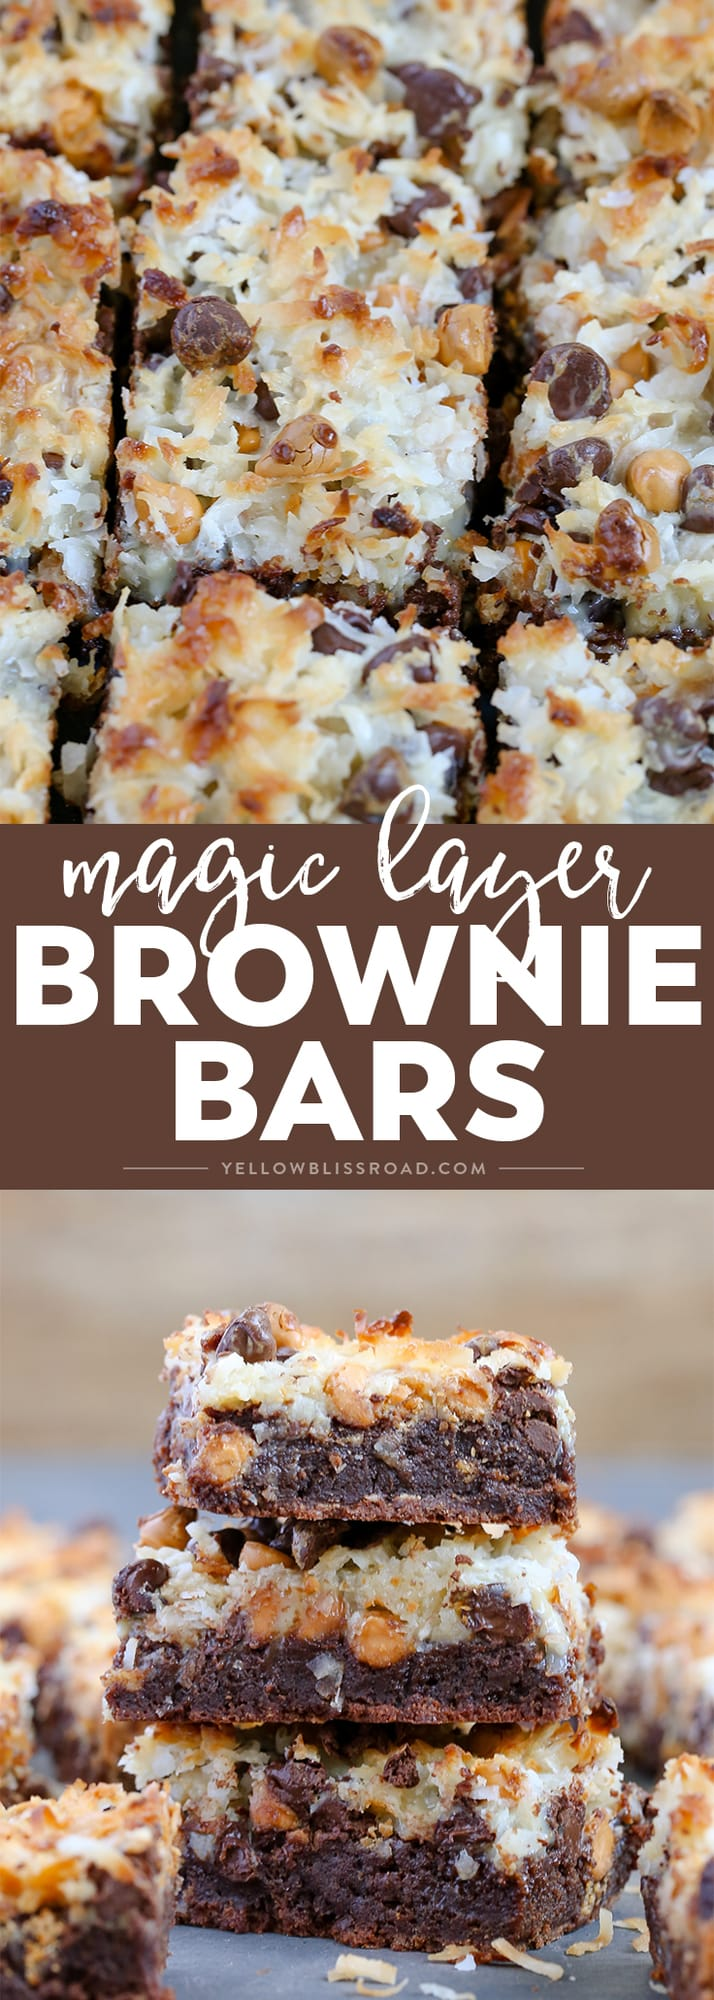 Magic Layer Brownie Bars have a rich brownie base, chocolate & butterscotch chips. coconut and sweetened condensed milk. Like the seven layer bars, only better!